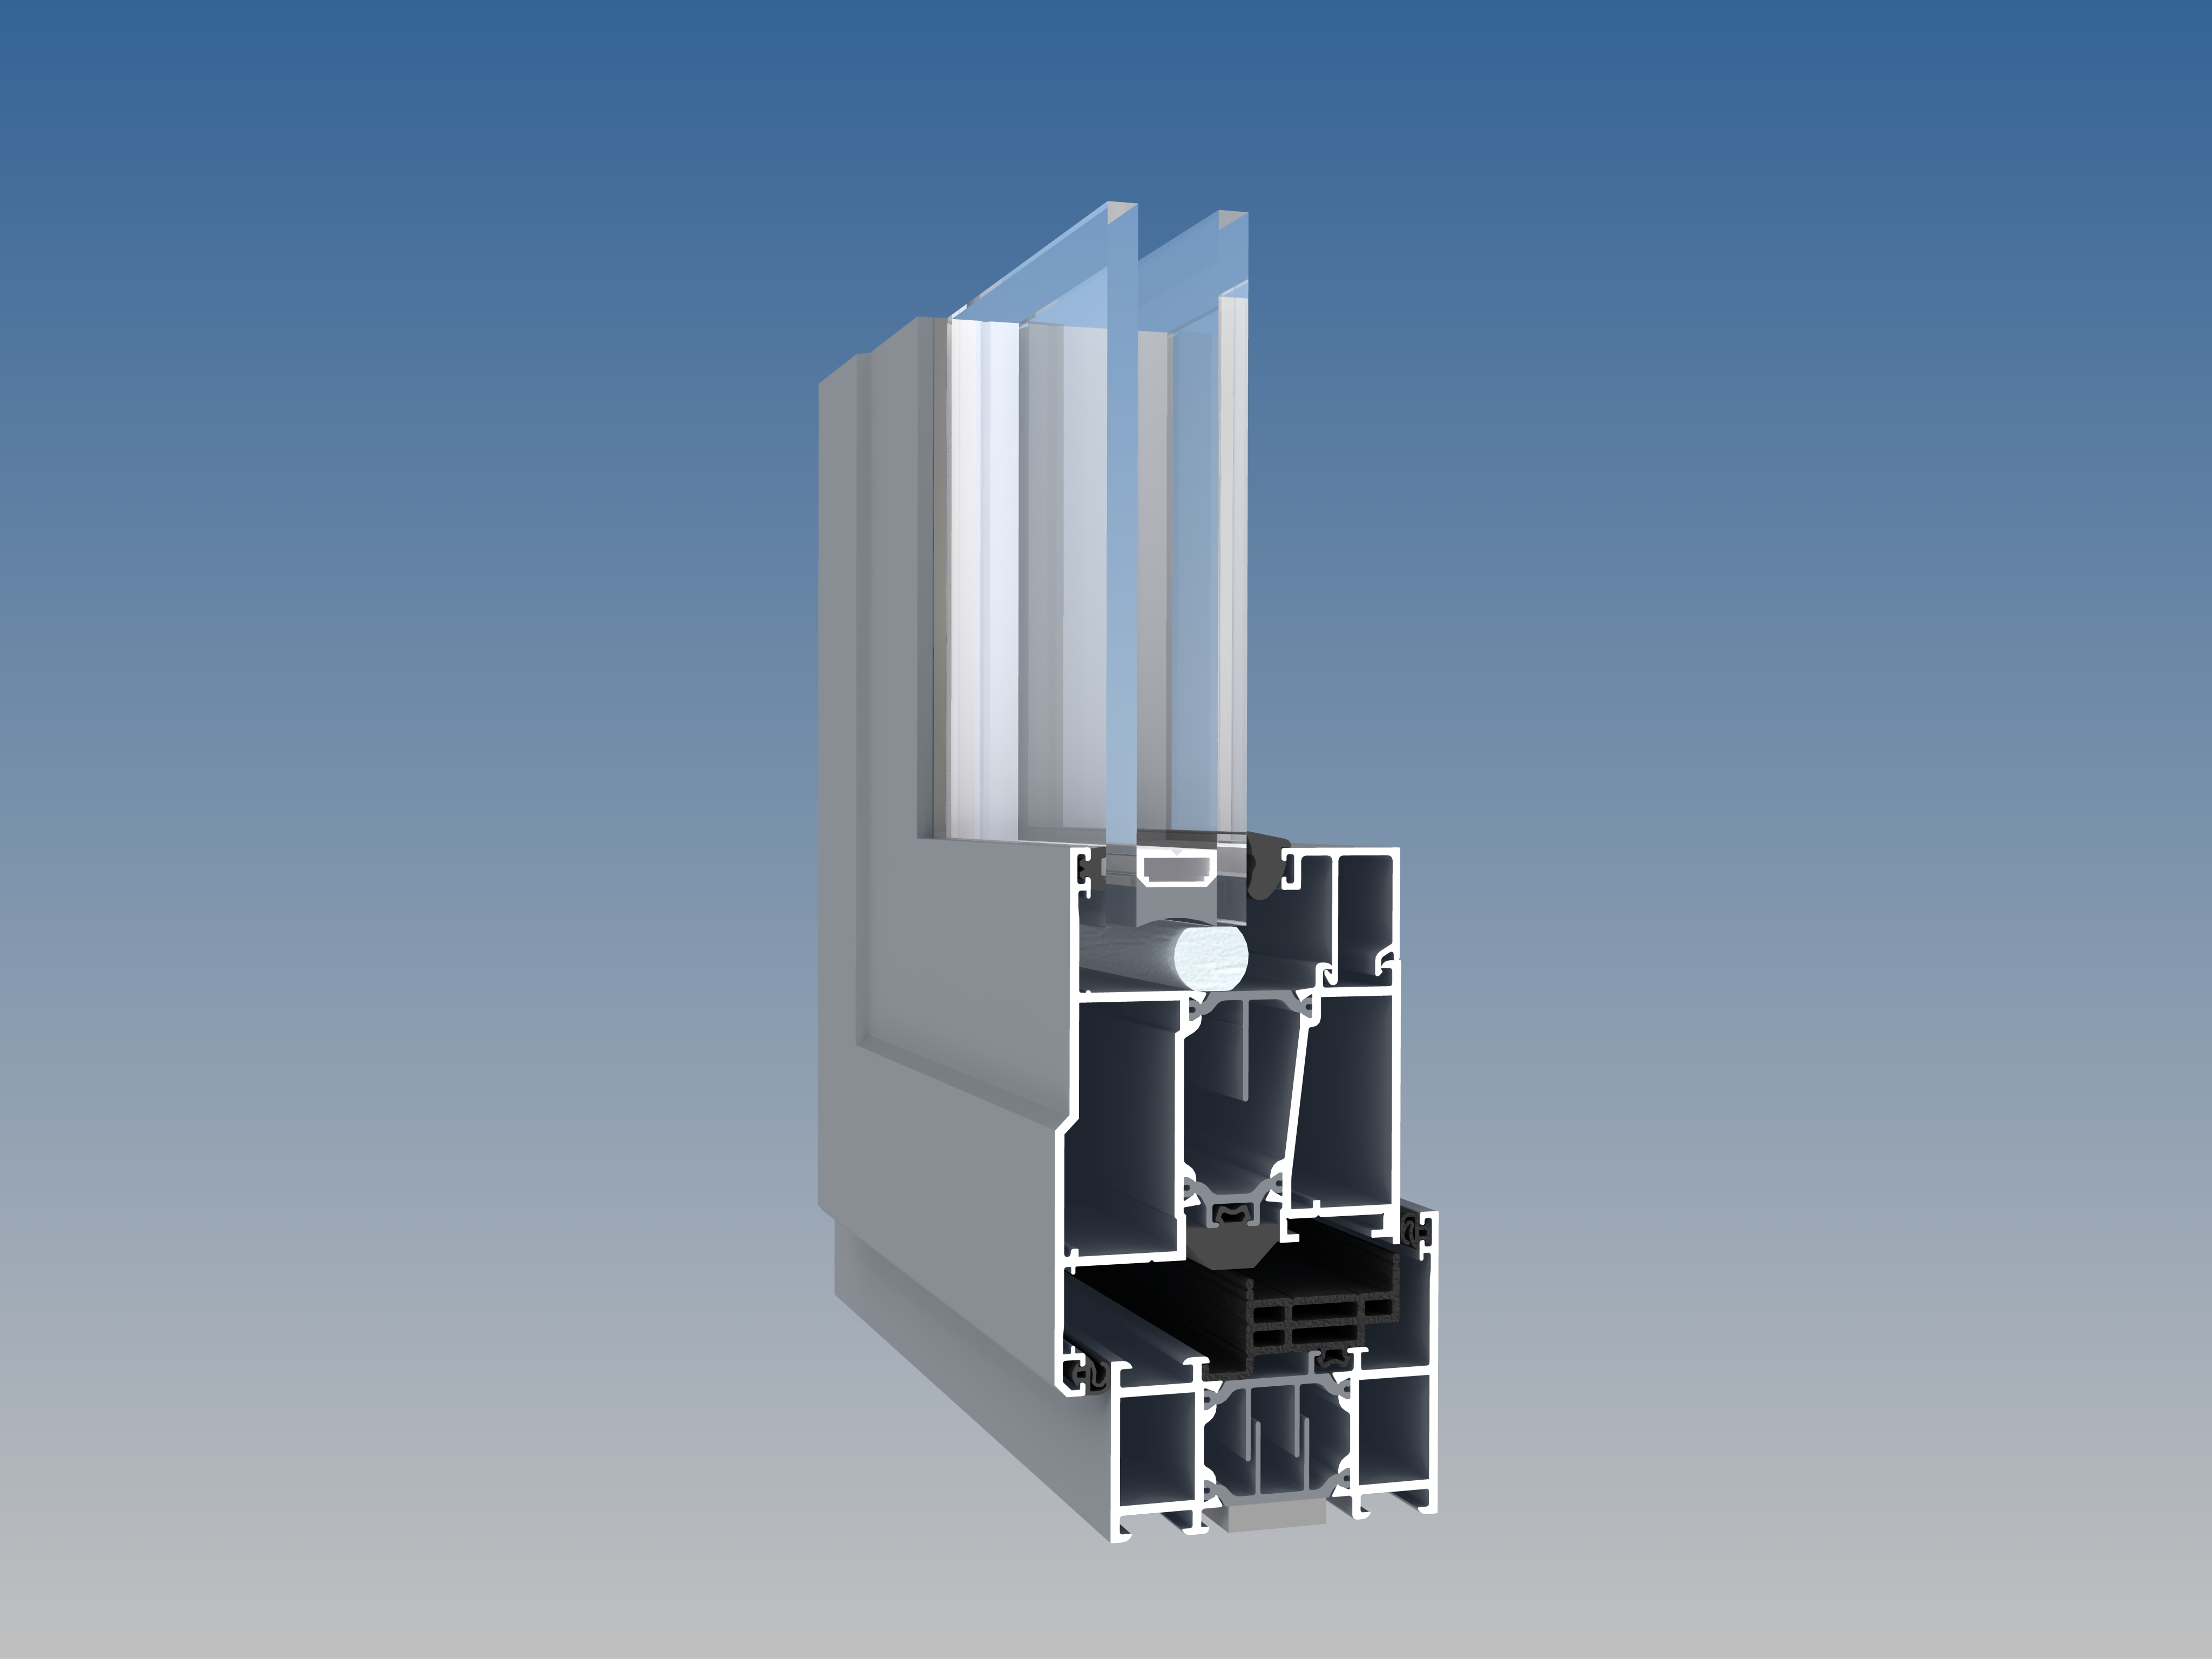 Parallel Hung Windows : Kawneer launches one of the largest casement windows on